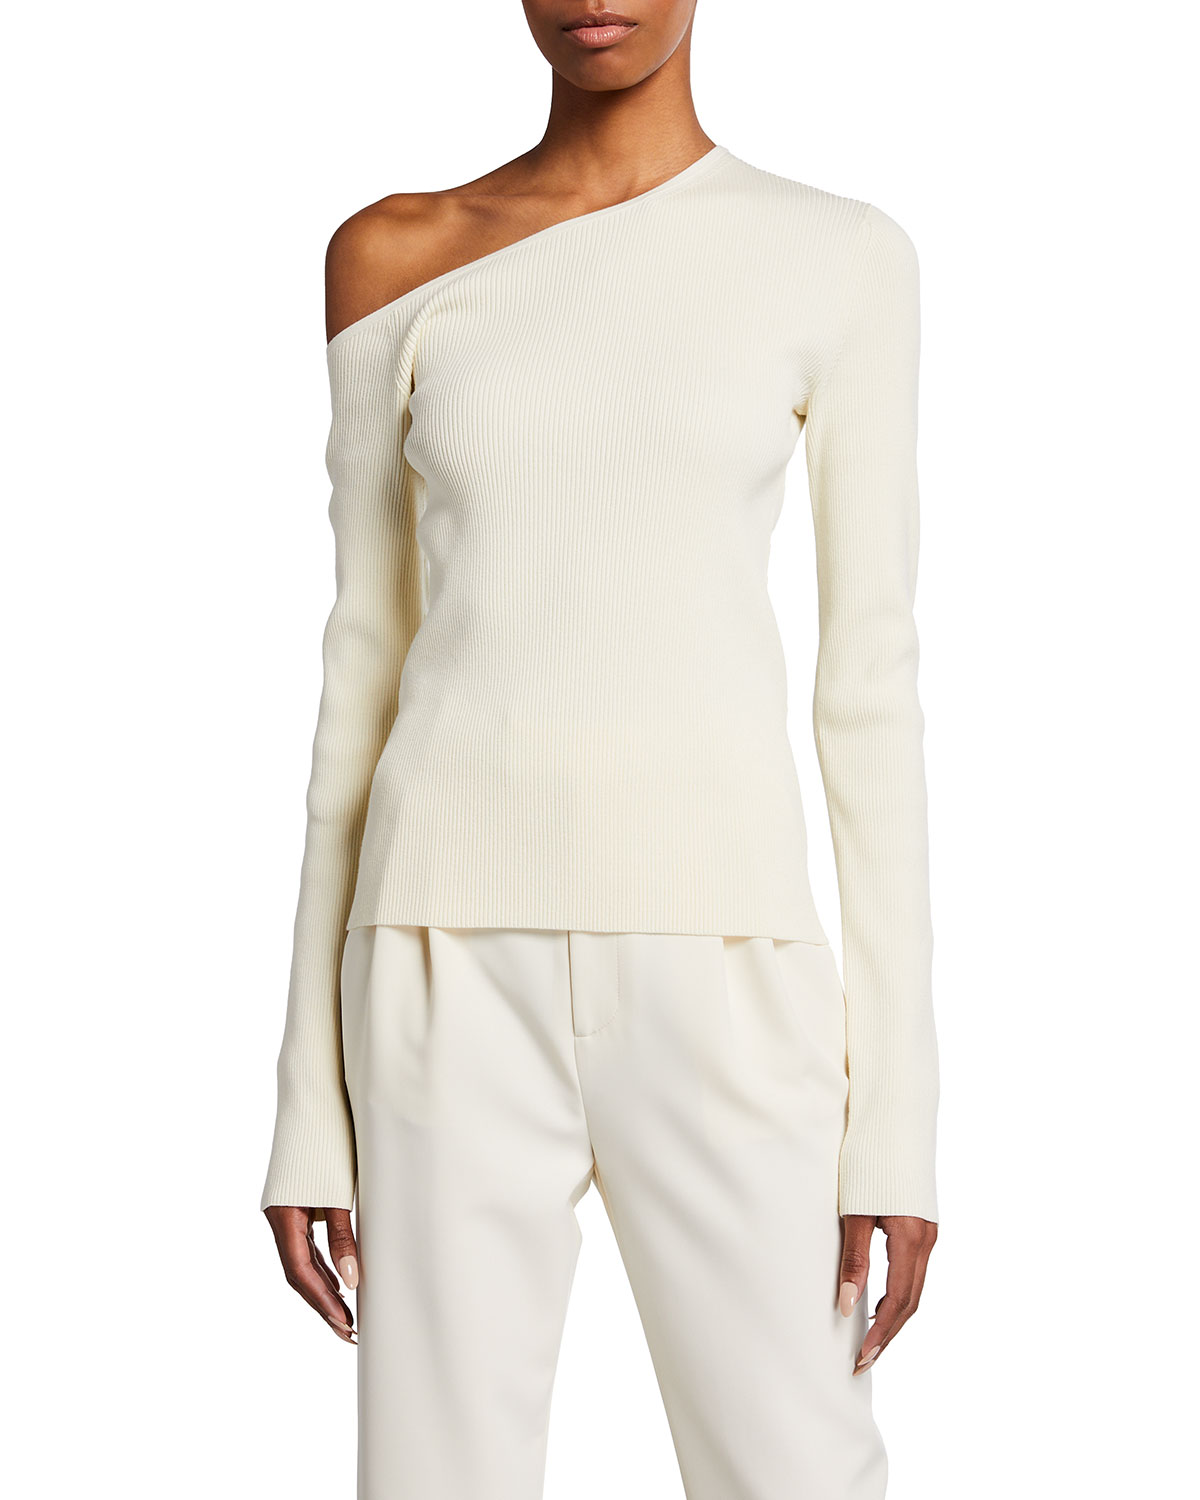 Ribbed One-Shoulder Long-Sleeve Top